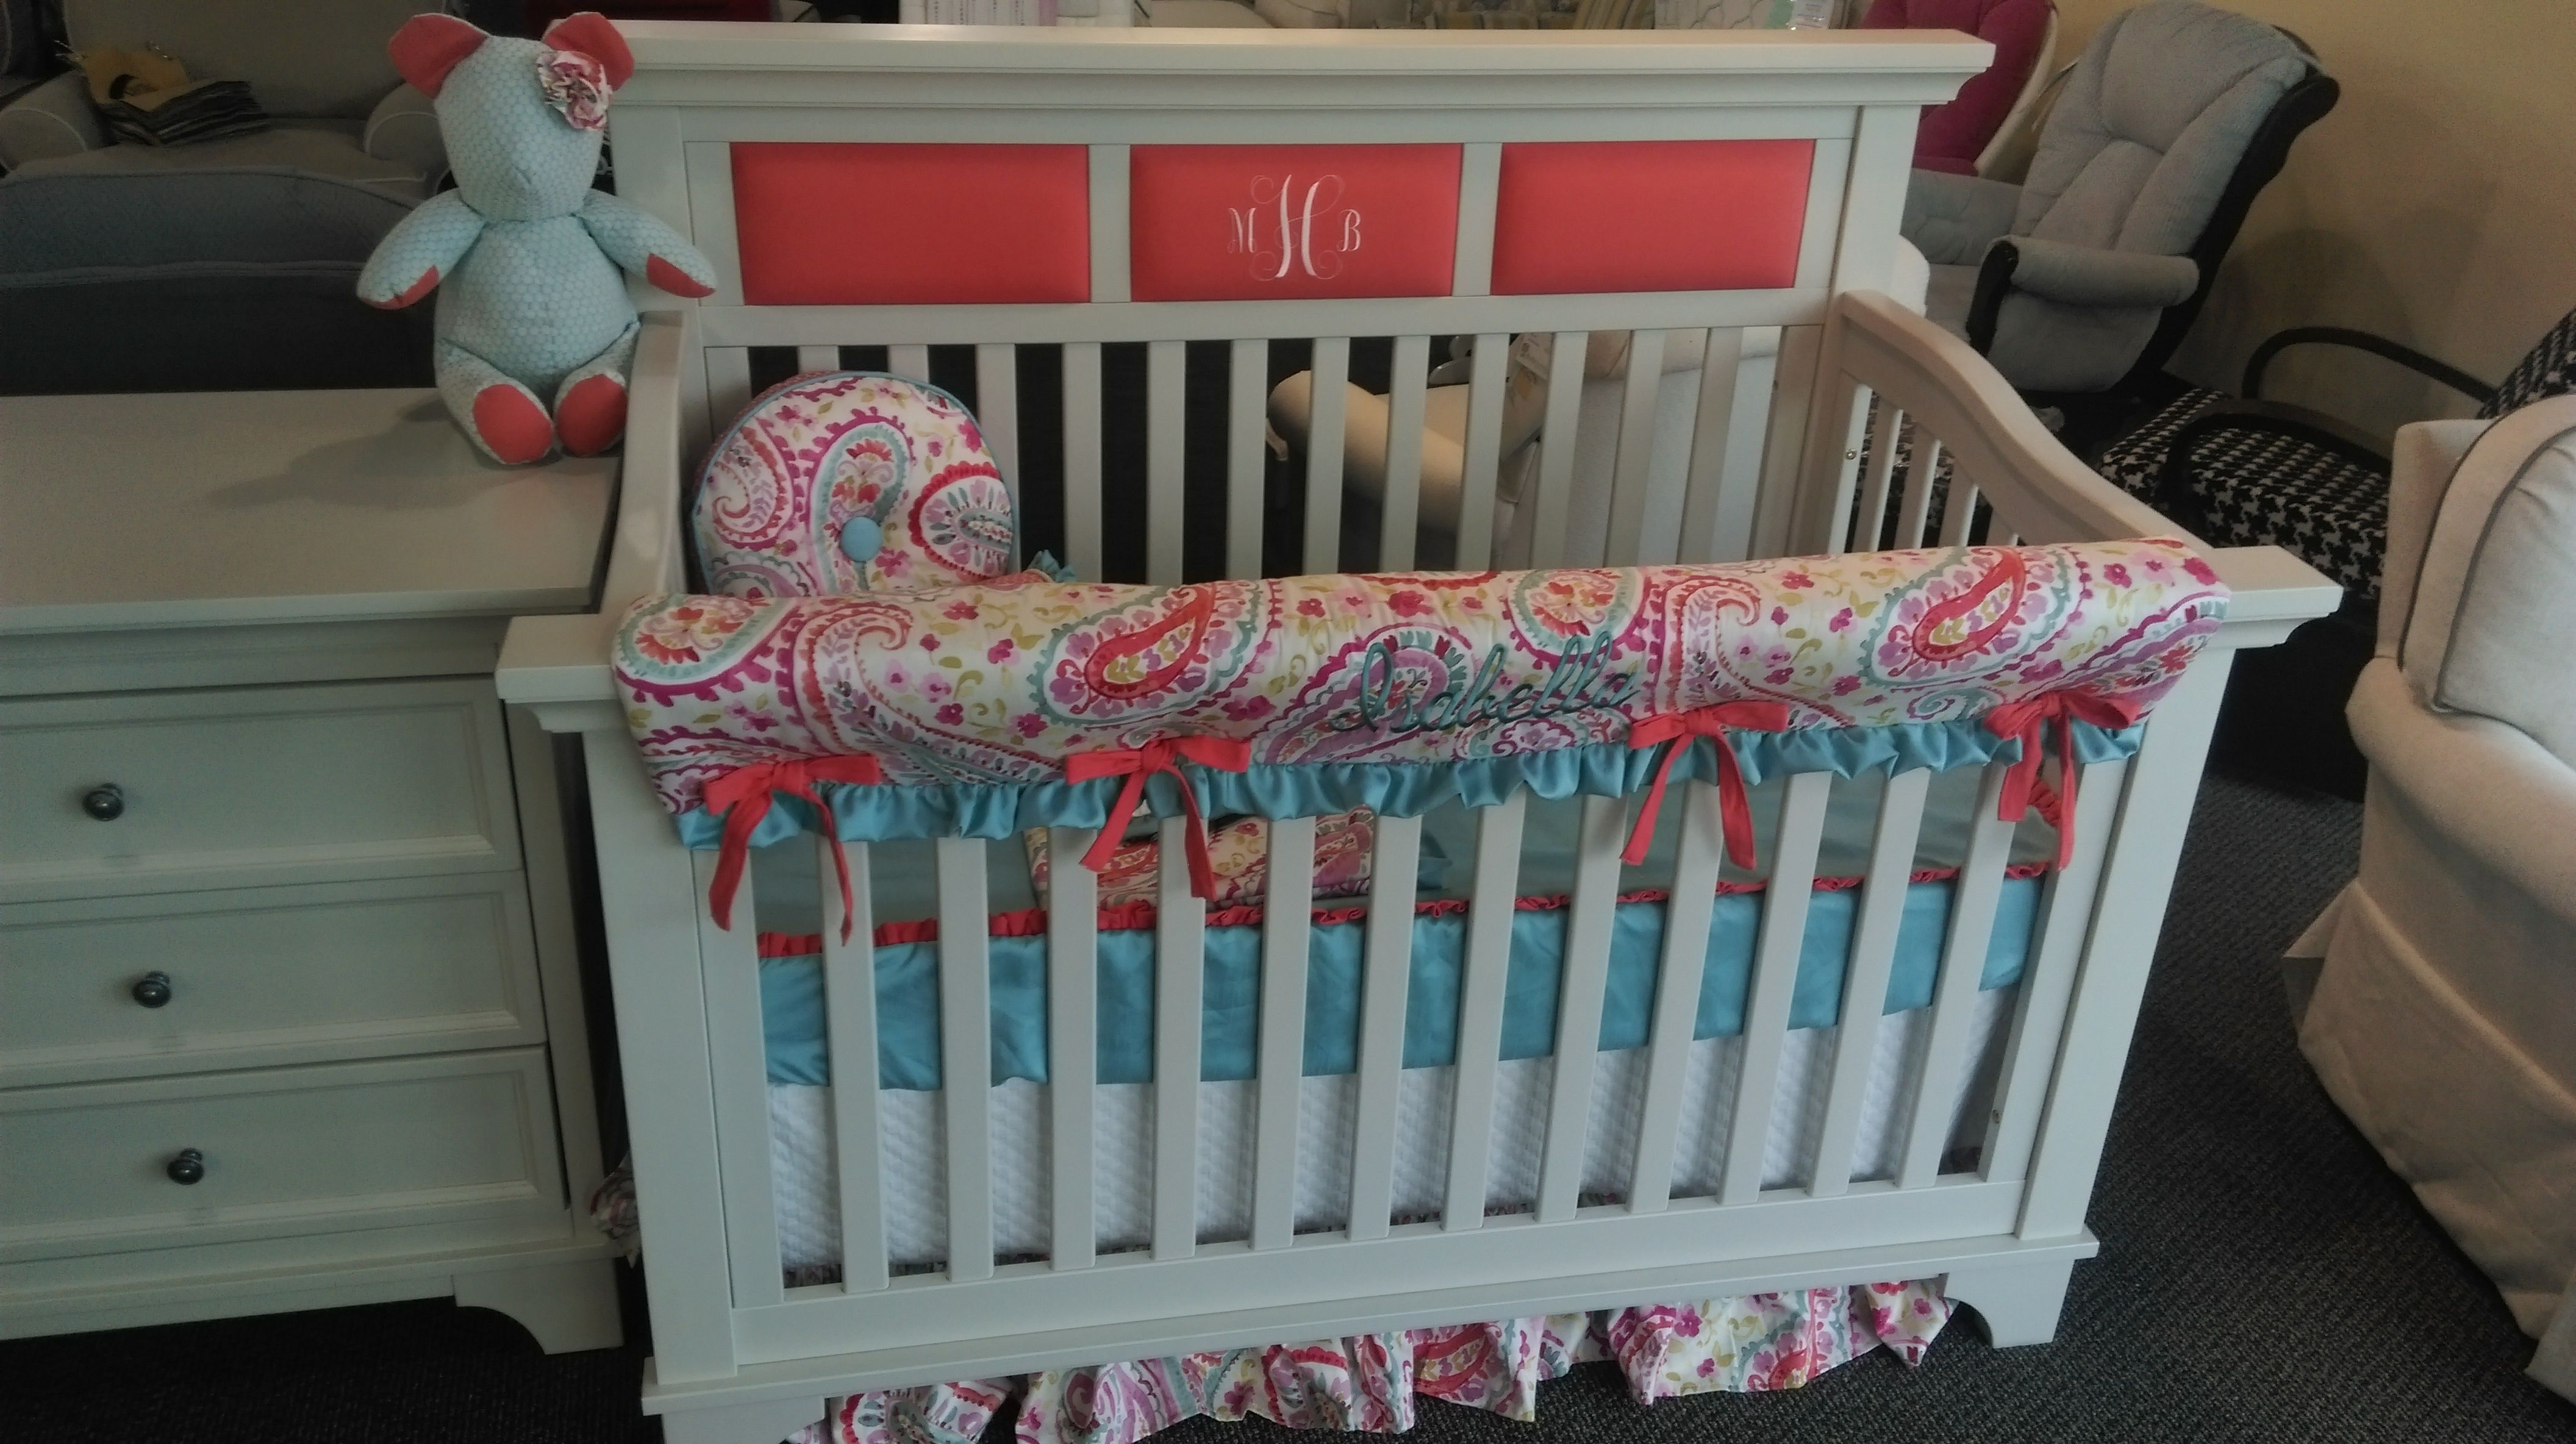 Crib for sale charleston sc - Baby S Monogram On Coral Fabric On The Upholstered Headboard Of The Arcadia Crib With Spring Paisley Bedding On Display At Baby Furniture Plus Kids In Sc